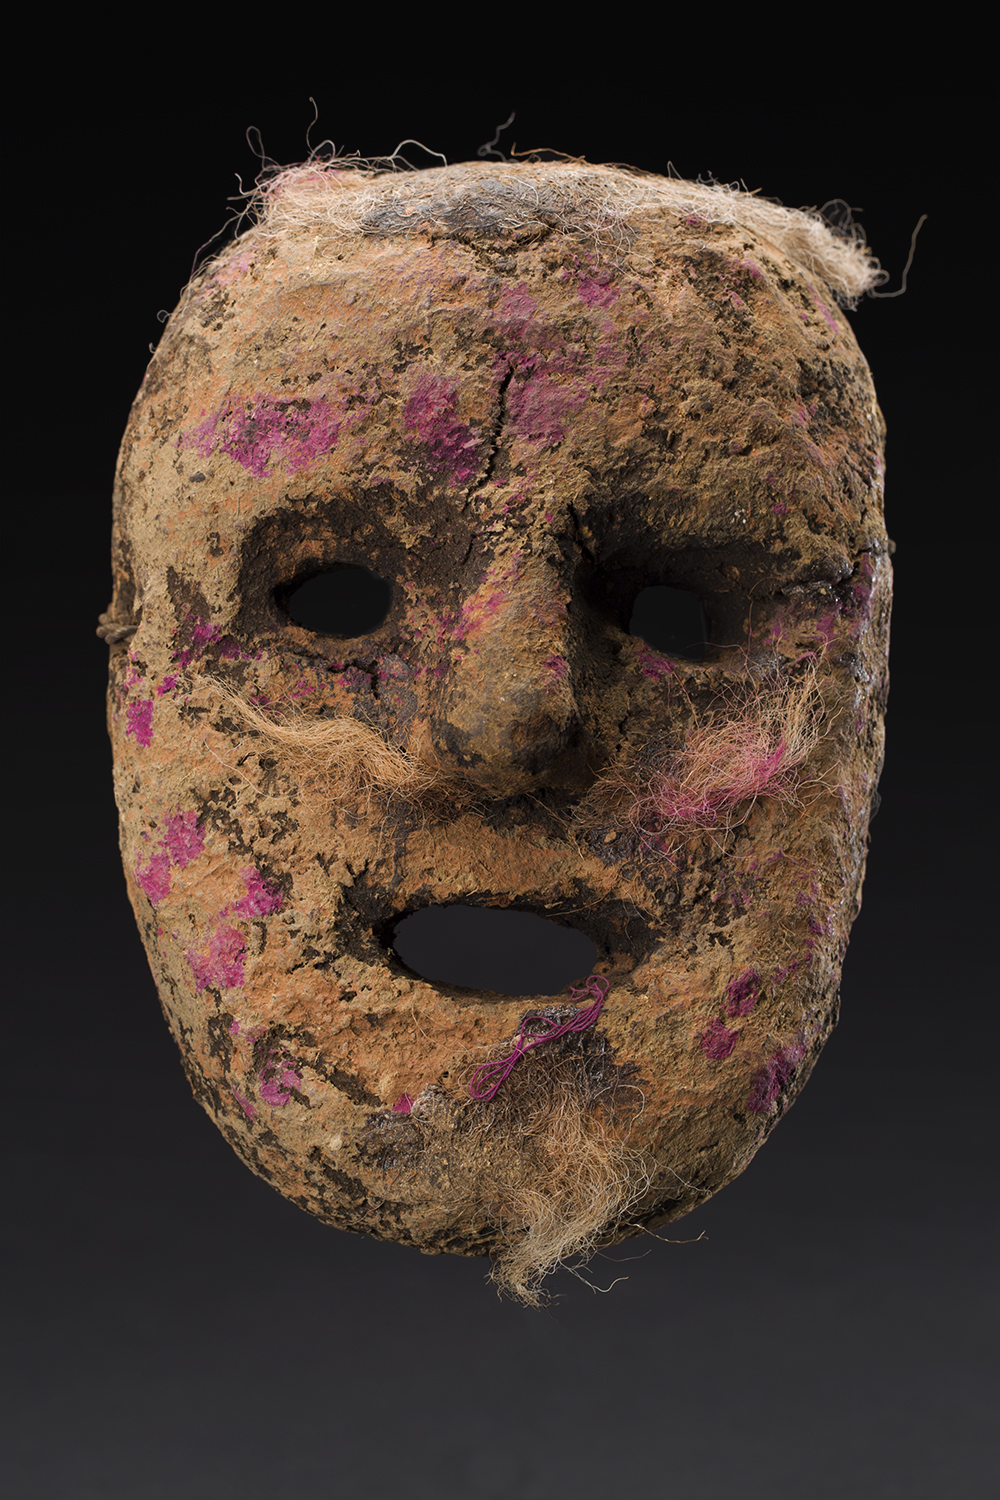 Masks    Nepal  , Early 20th C. Cow dung, clay, organic materials, fibers 8 x 6 x 3 inches 20.3 x 15.2 x 7.6 cm M 235